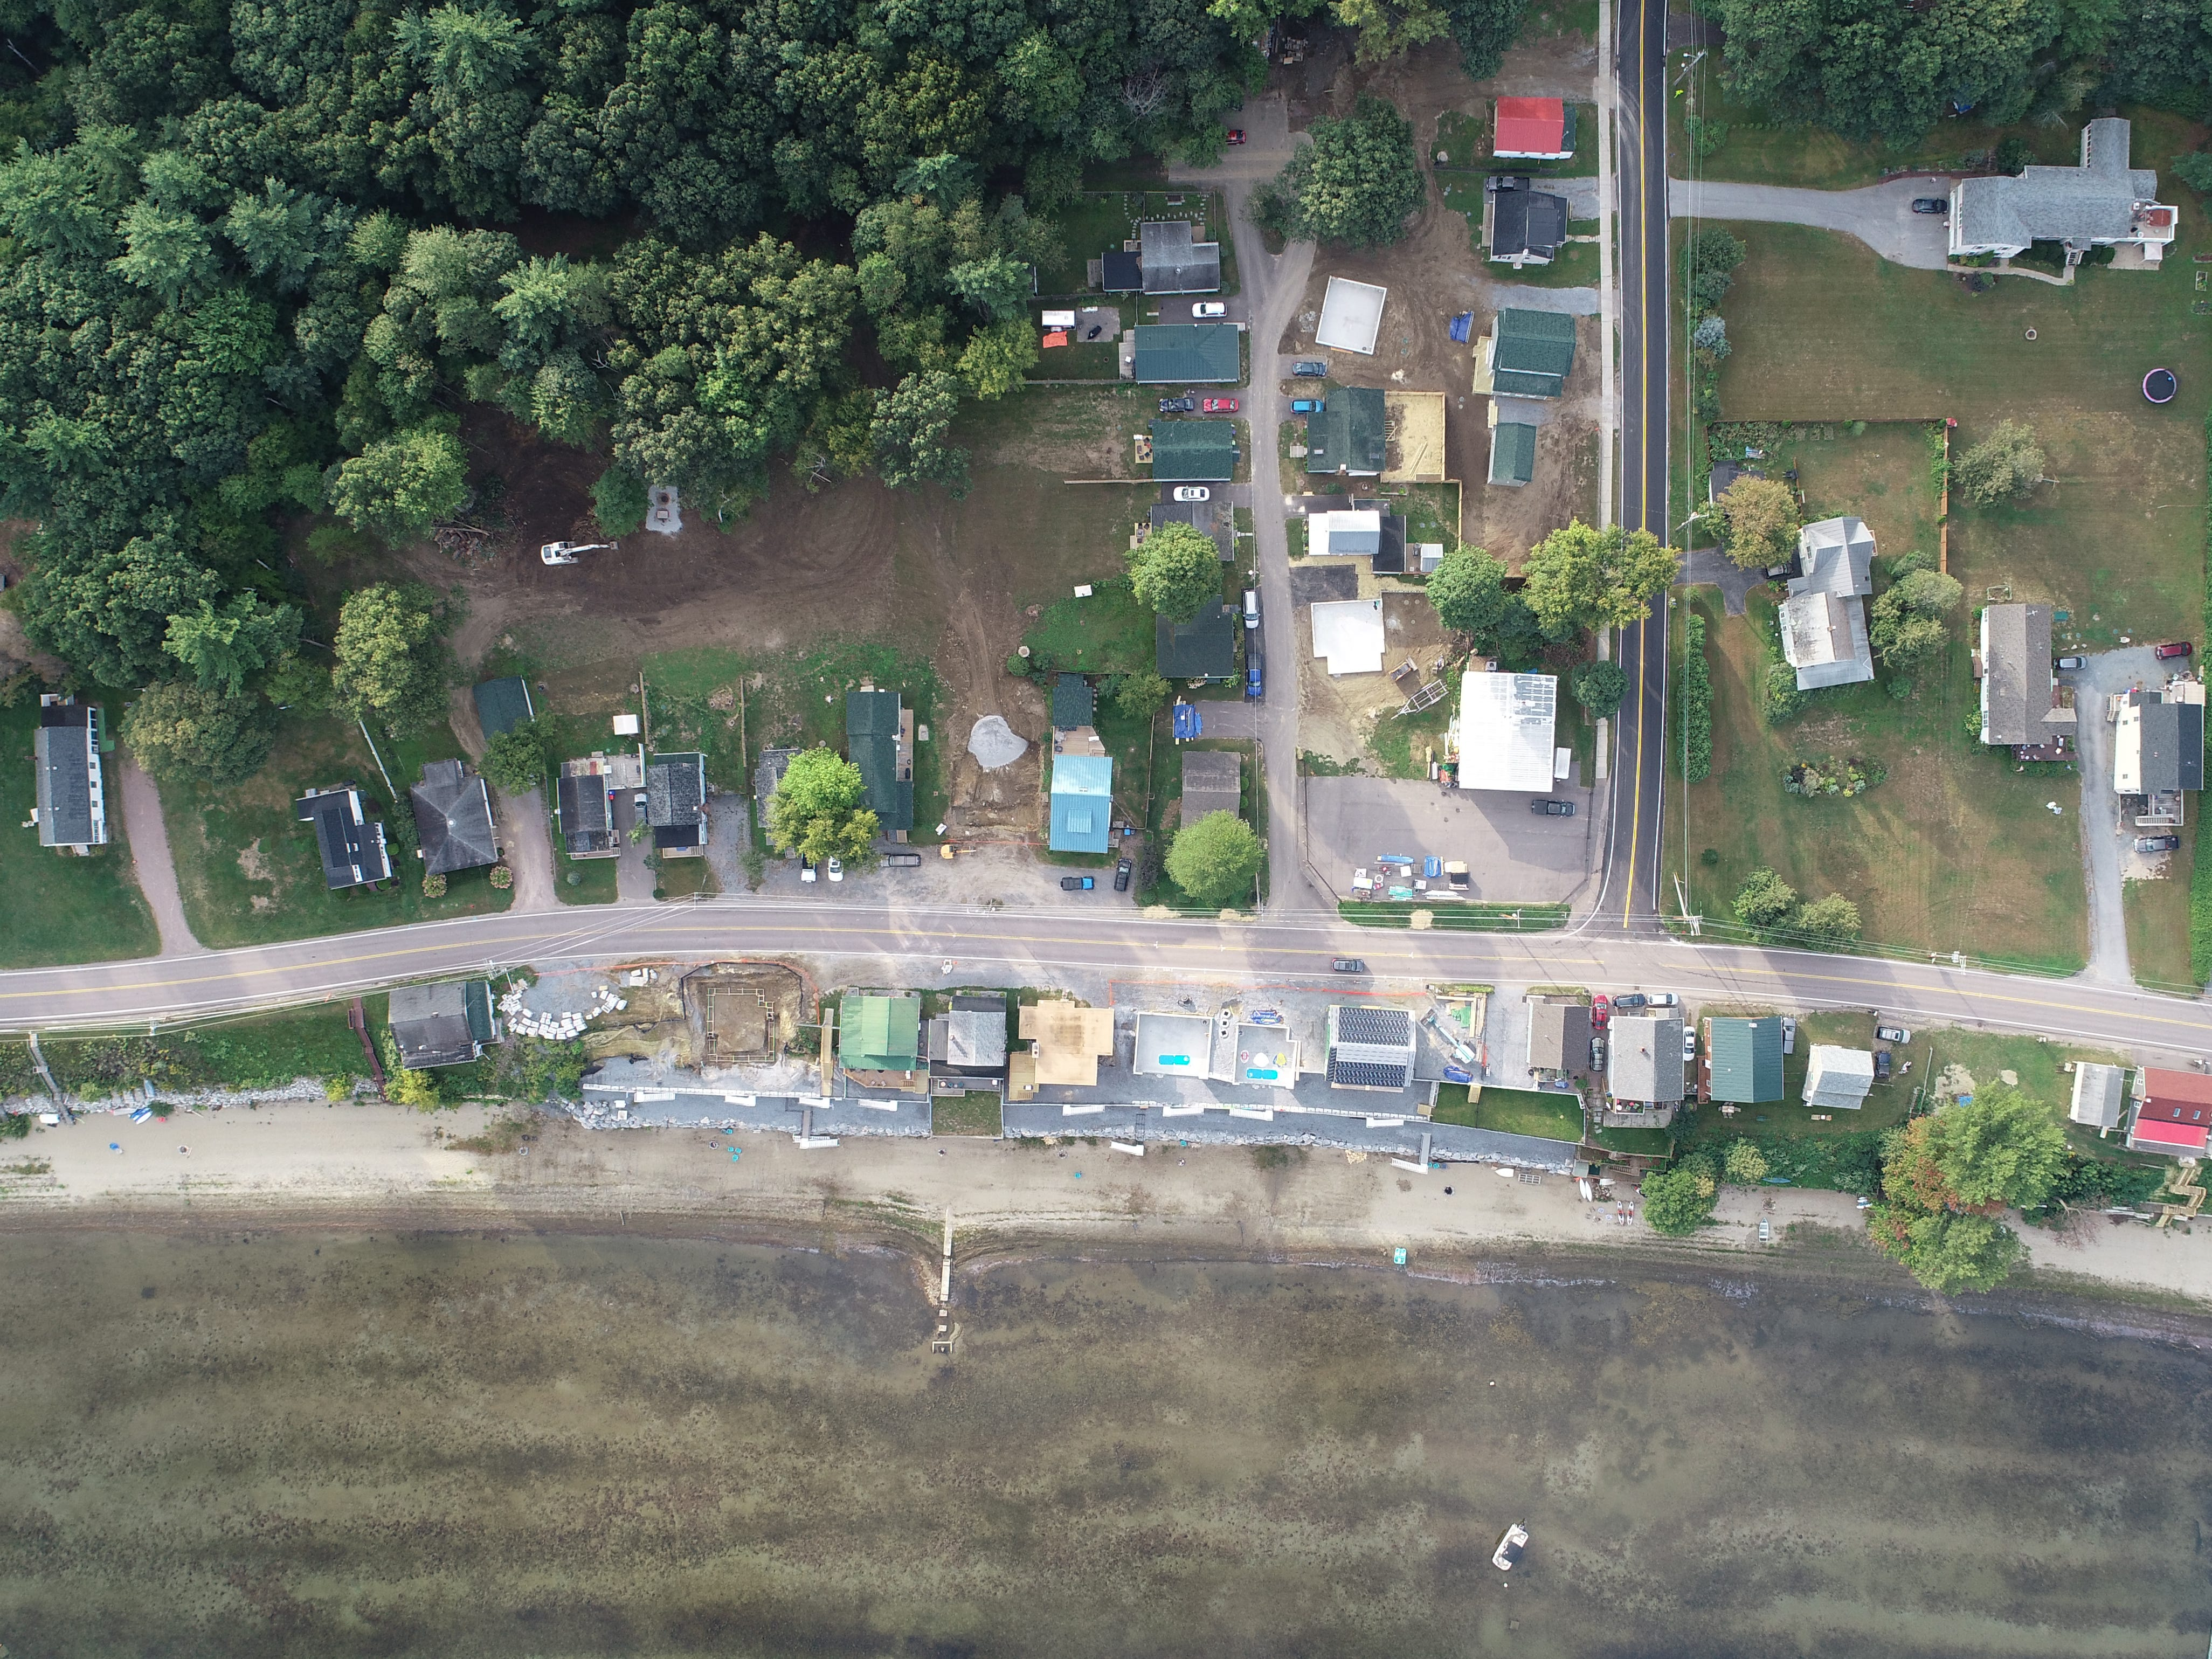 Higher up: An aerial (drone) view of construction of a seawall and new homes on East Lakeshore Drive in Colchester, photographed Sept. 15, 2018.